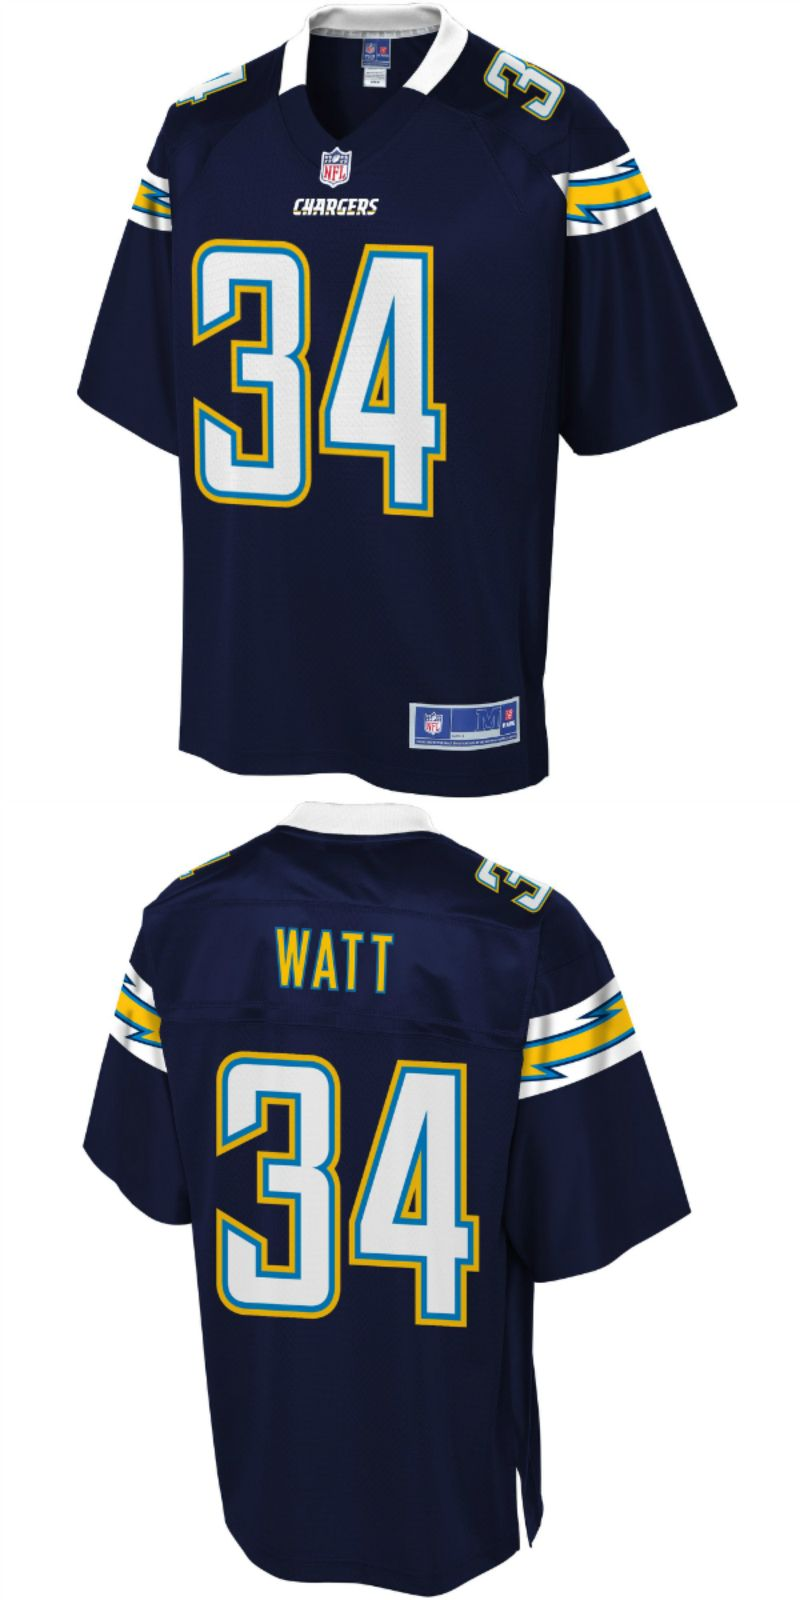 outlet store a3edc 64947 Derek Watt Los Angeles Chargers Football Jersey | NFL LOS ...